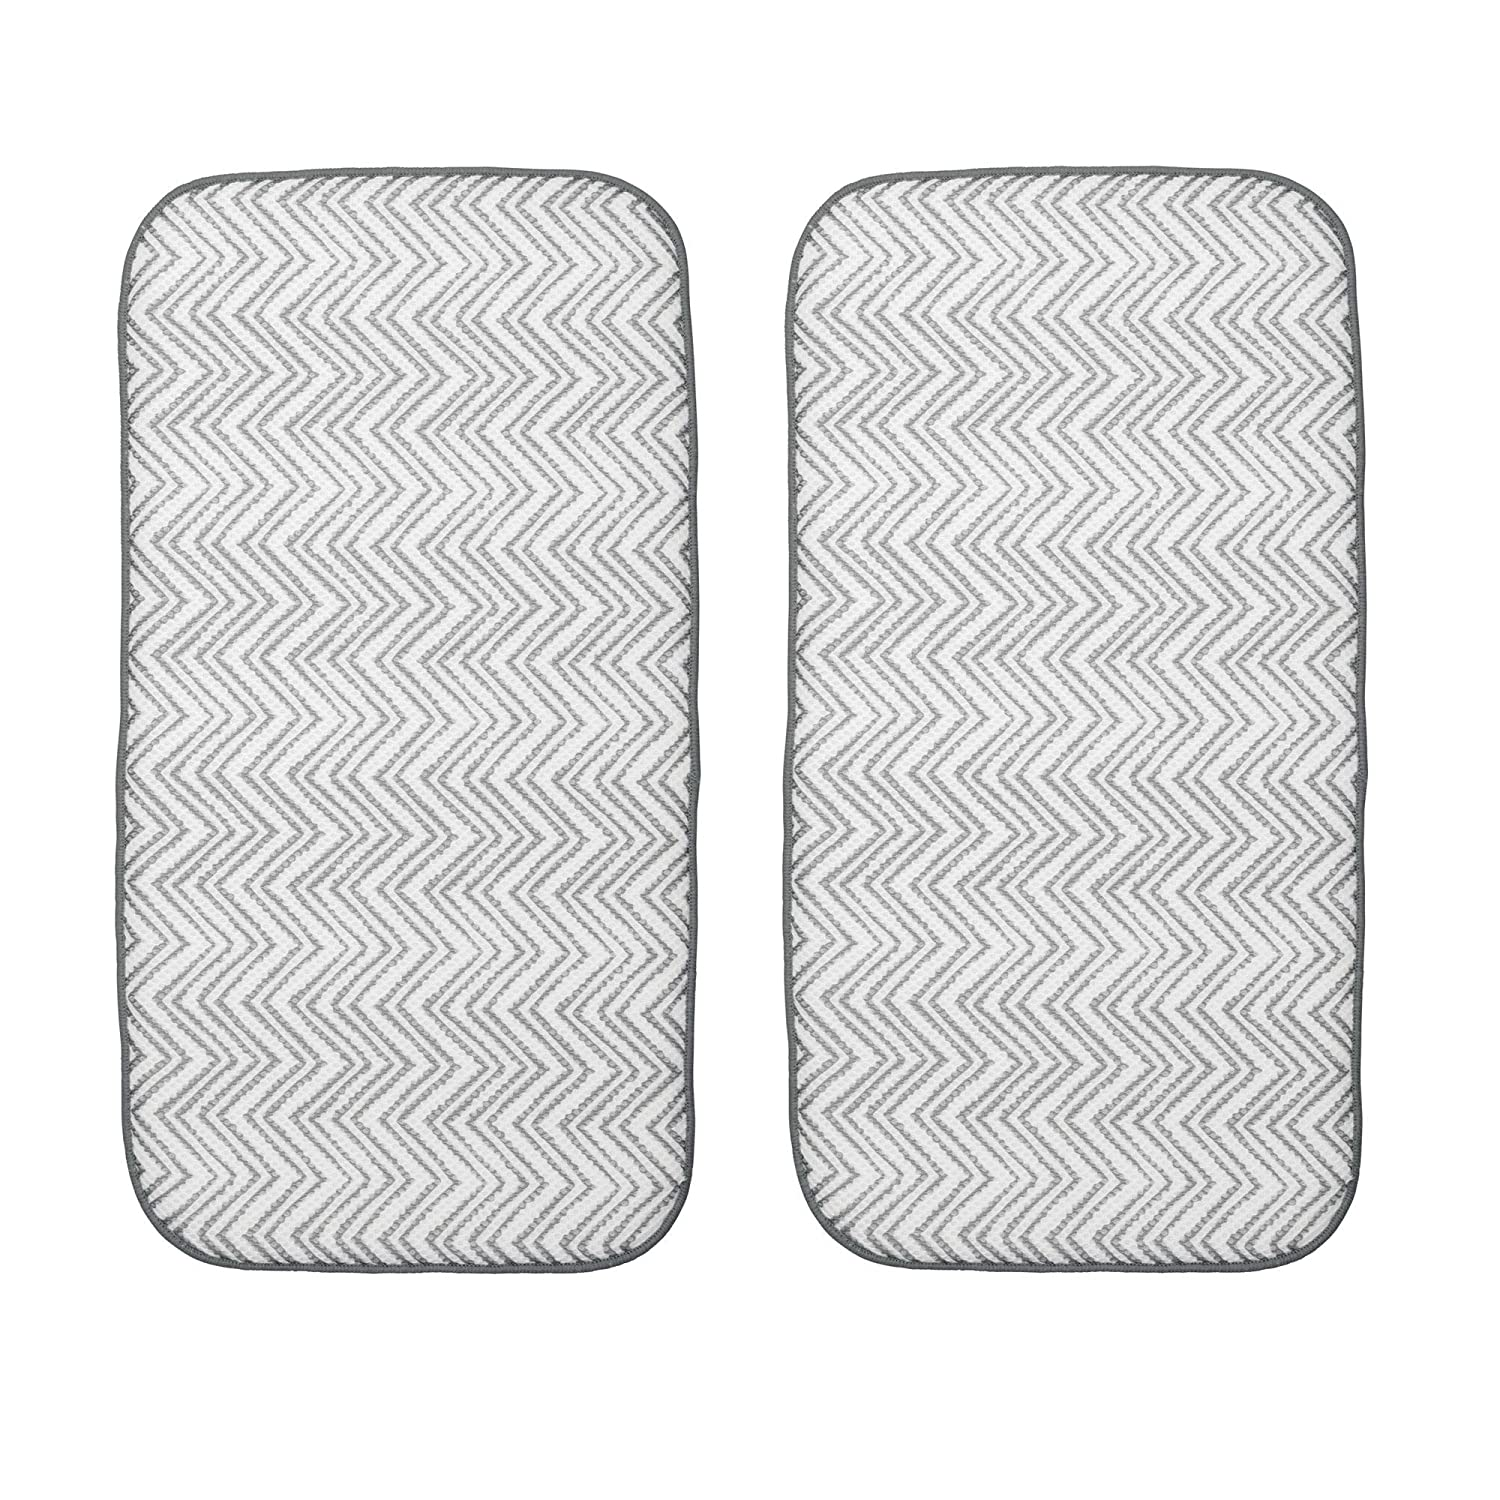 mDesign Narrow Small Microfiber Reversible Chevron Fabric Counter and Dish Drying Mats for Kitchen Sink Dishes Drainer - Pack of 2, Gray/White MetroDecor